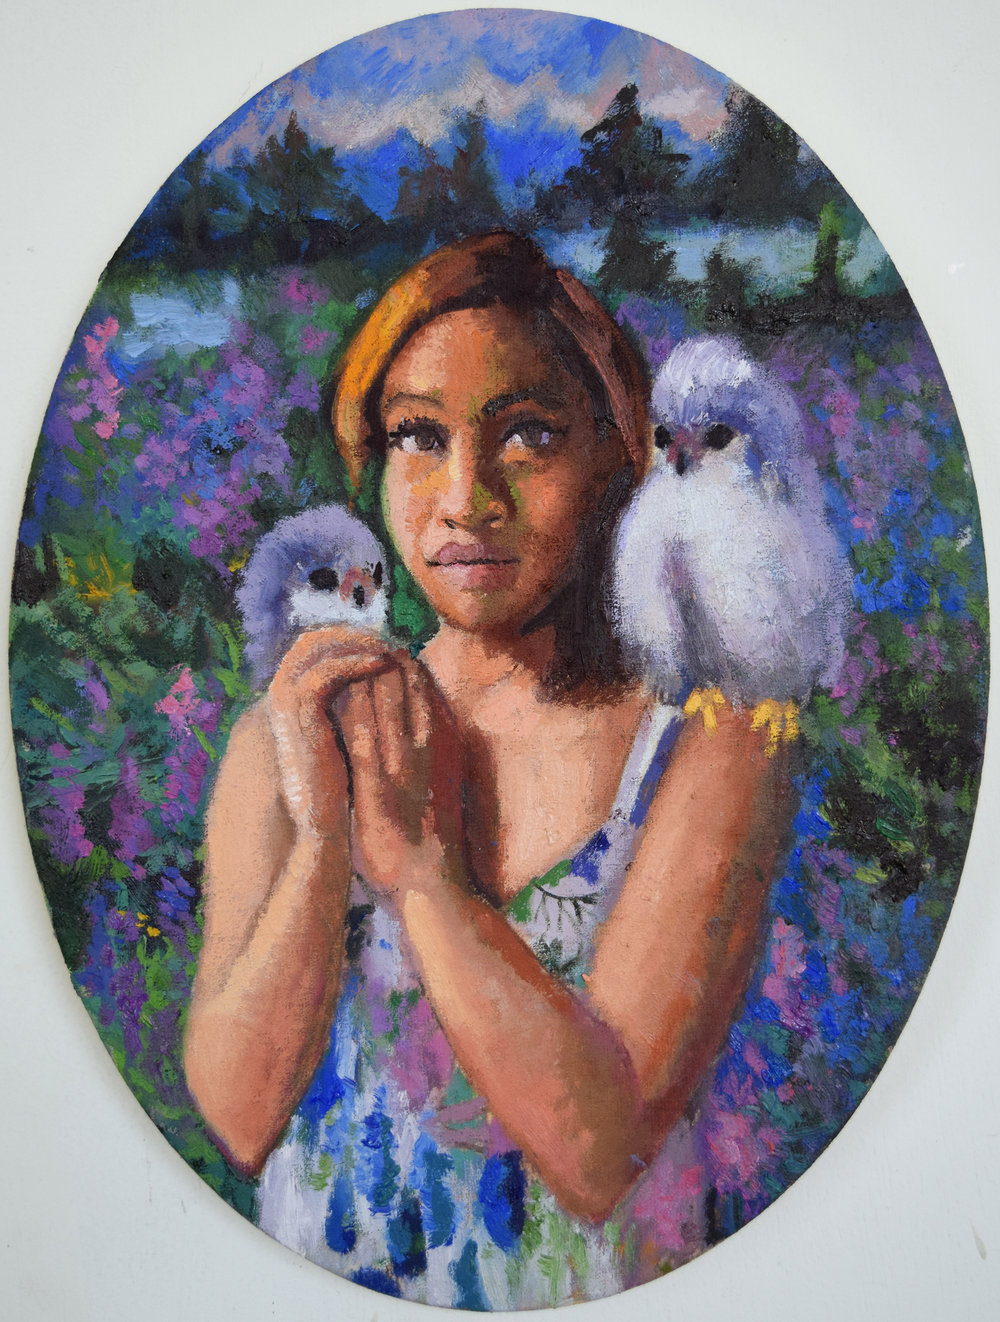 Young Inanna with the Owls